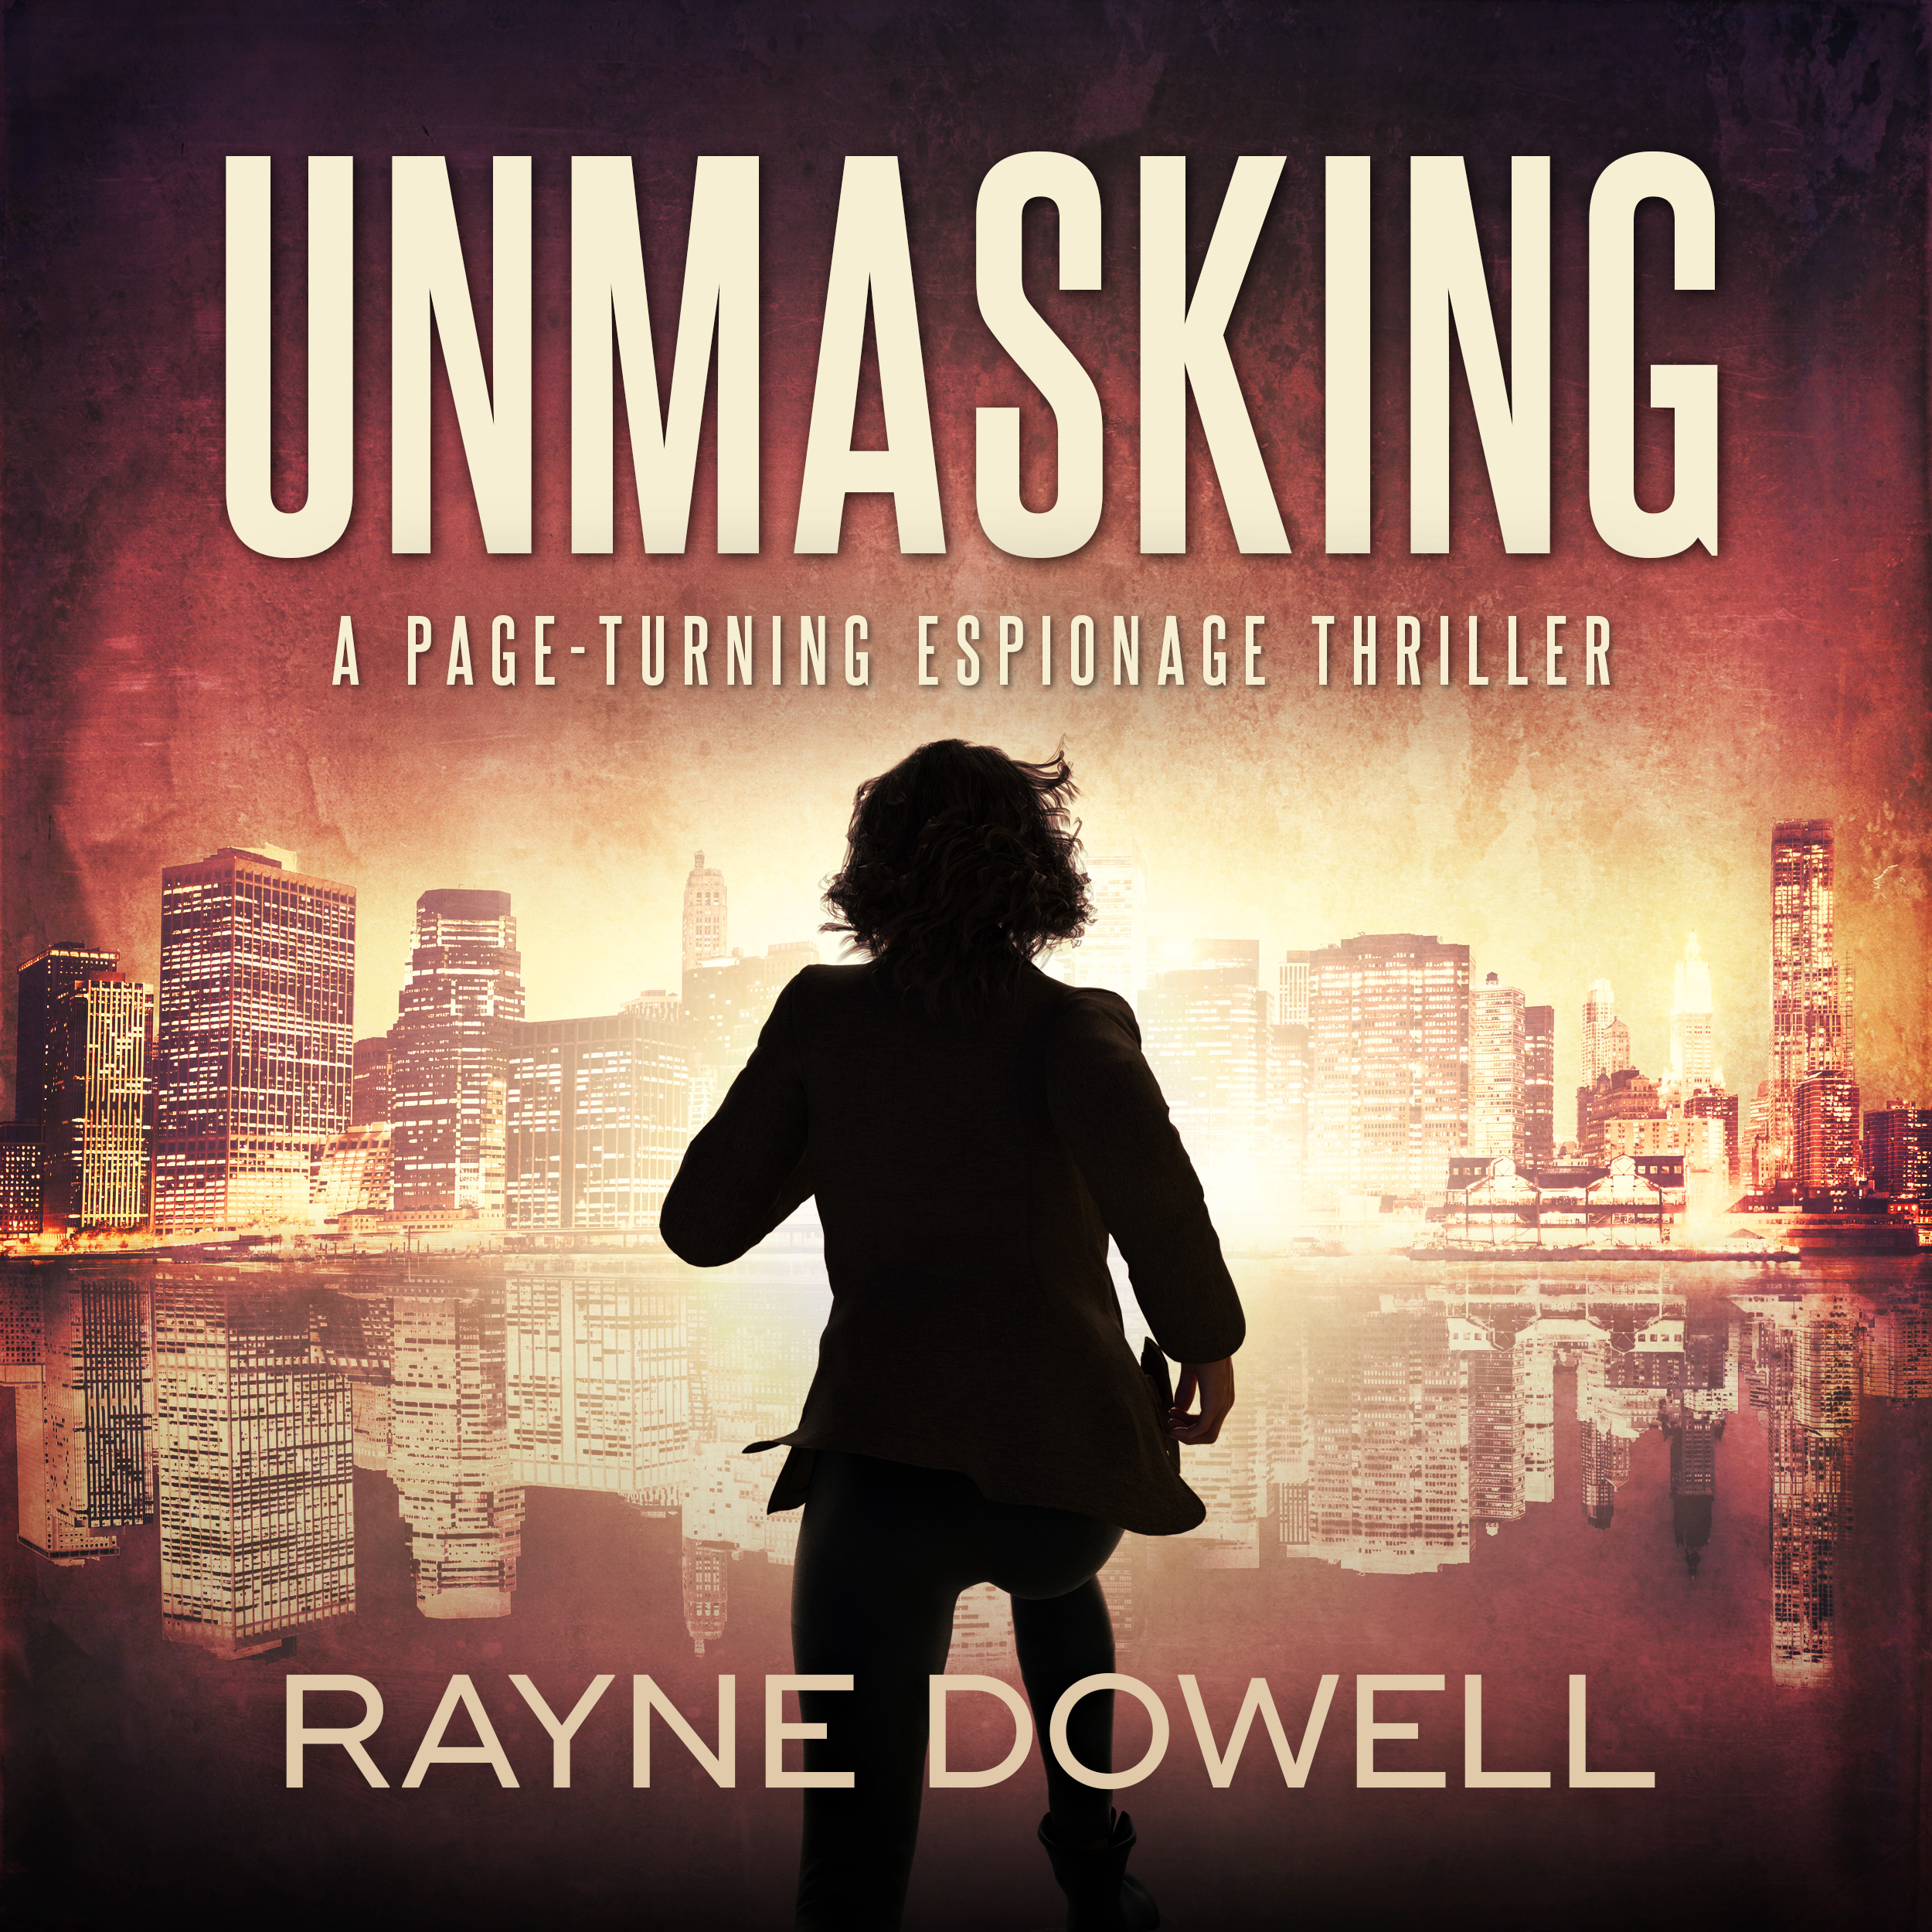 Unmasking audiobook cover.jpg